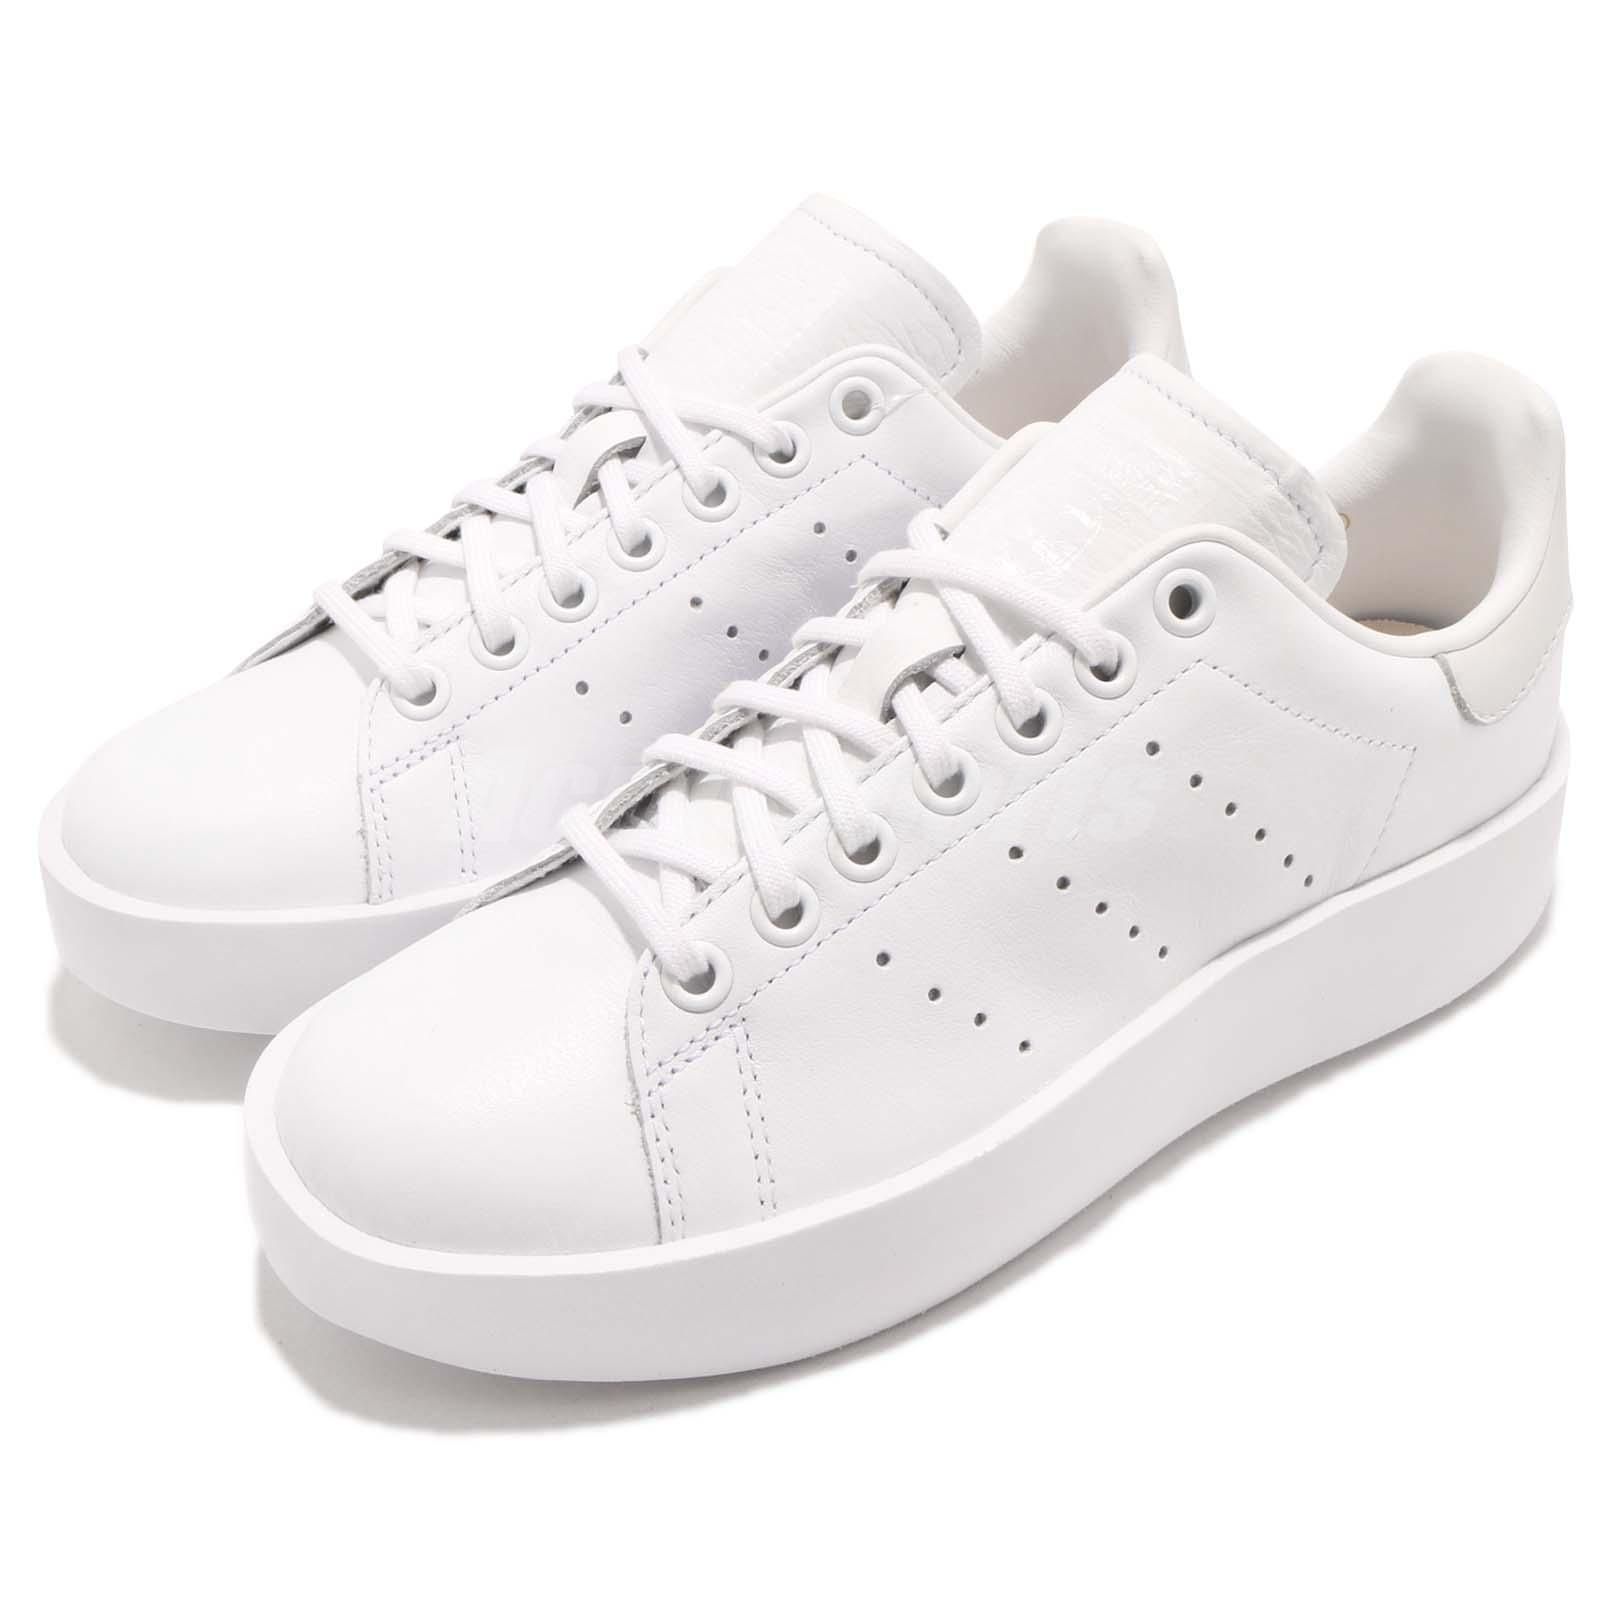 separation shoes f21bd ffc48 Details about adidas Originals Stan Smith Bold W Triple White Women Casual  Shoe Sneaker CQ2830